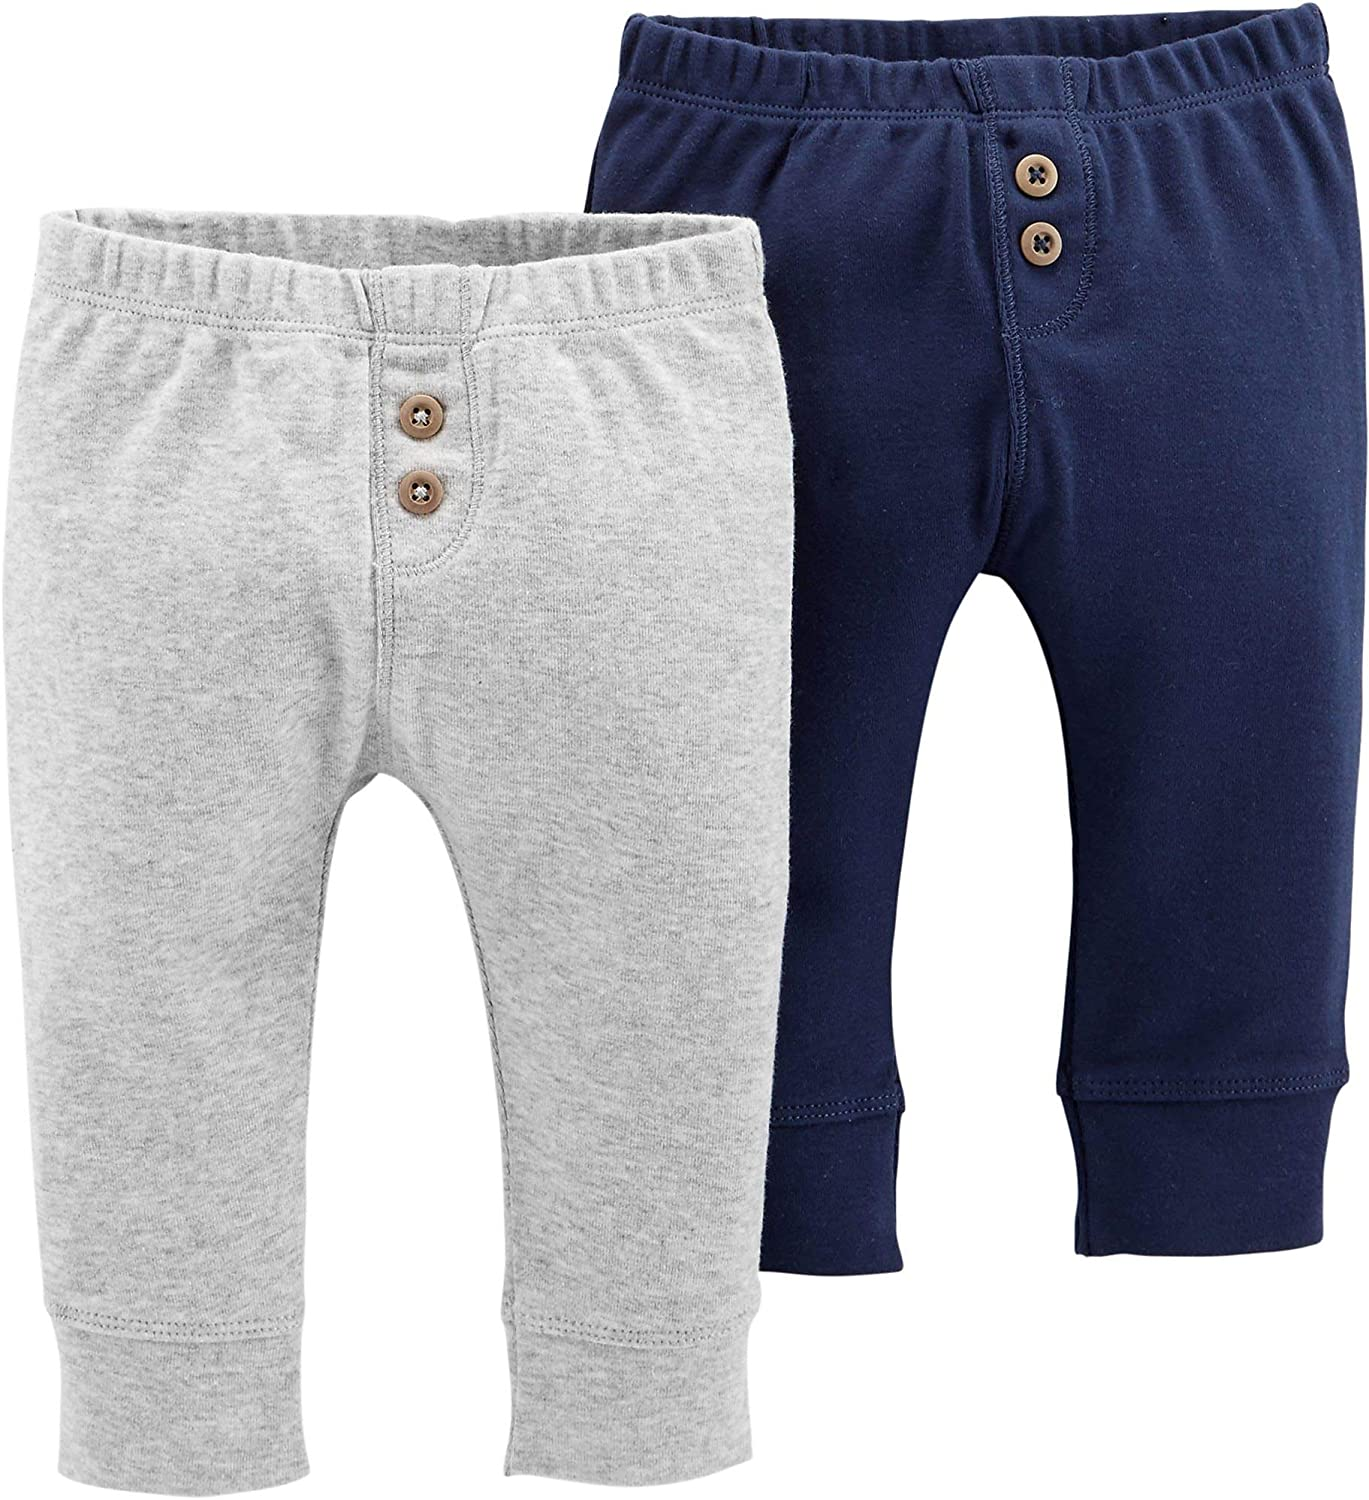 Carters Baby Boys 2-pk Solid Banded Pull-On Pants NEWBORN